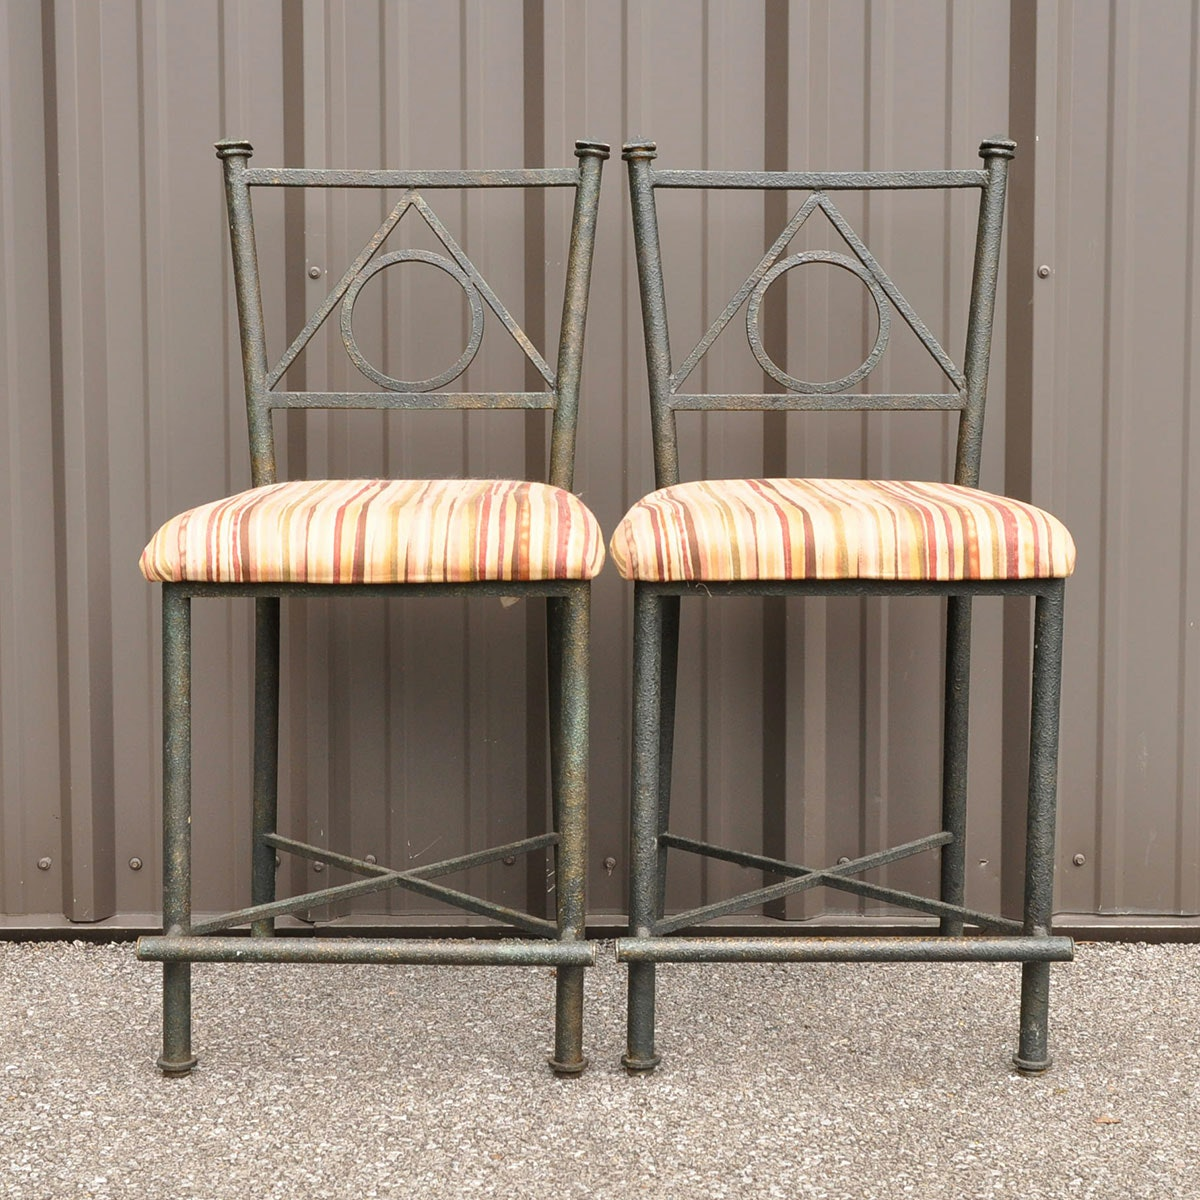 Maple Kitchen Table With Chair And Bench Ebth: Holman Manufacturing Company Maple Dining Chairs : EBTH